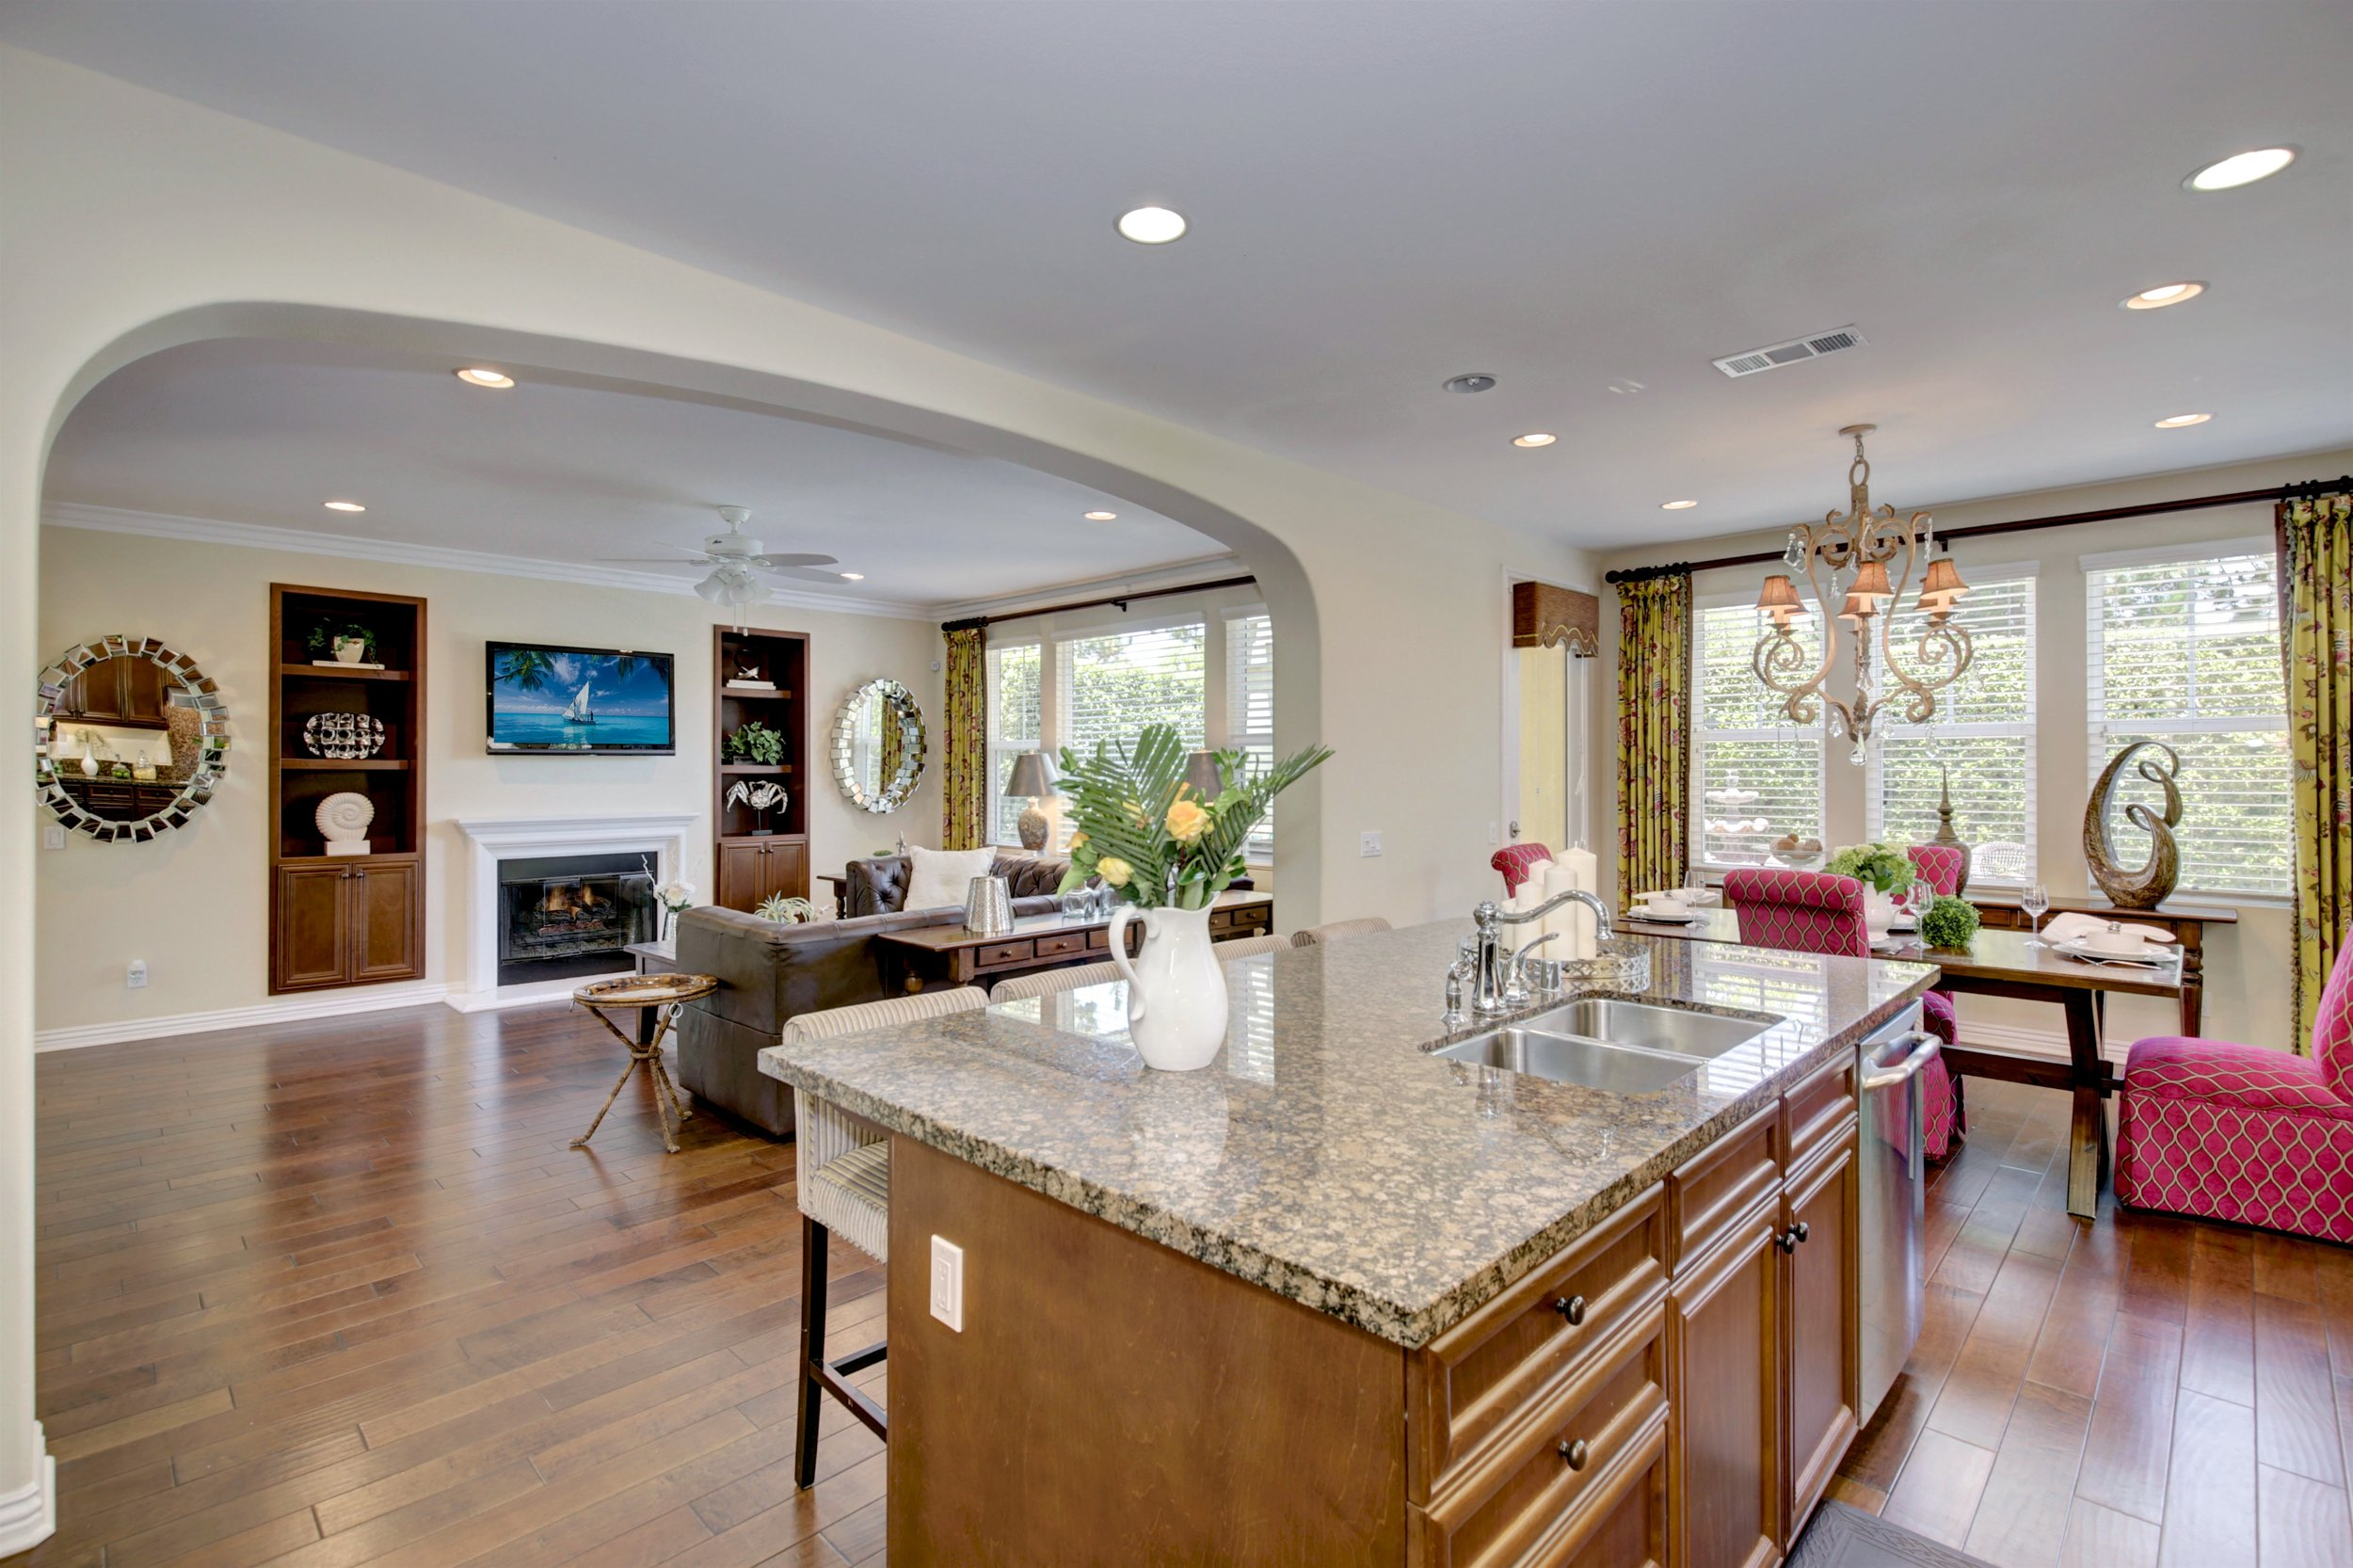 - Elegant & ExquisiteSOLD by MARIA X for $860,0001028 Palmetto Way, Costa Mesa3 Bedrooms/2.5 Baths 2,242 sq.ft.